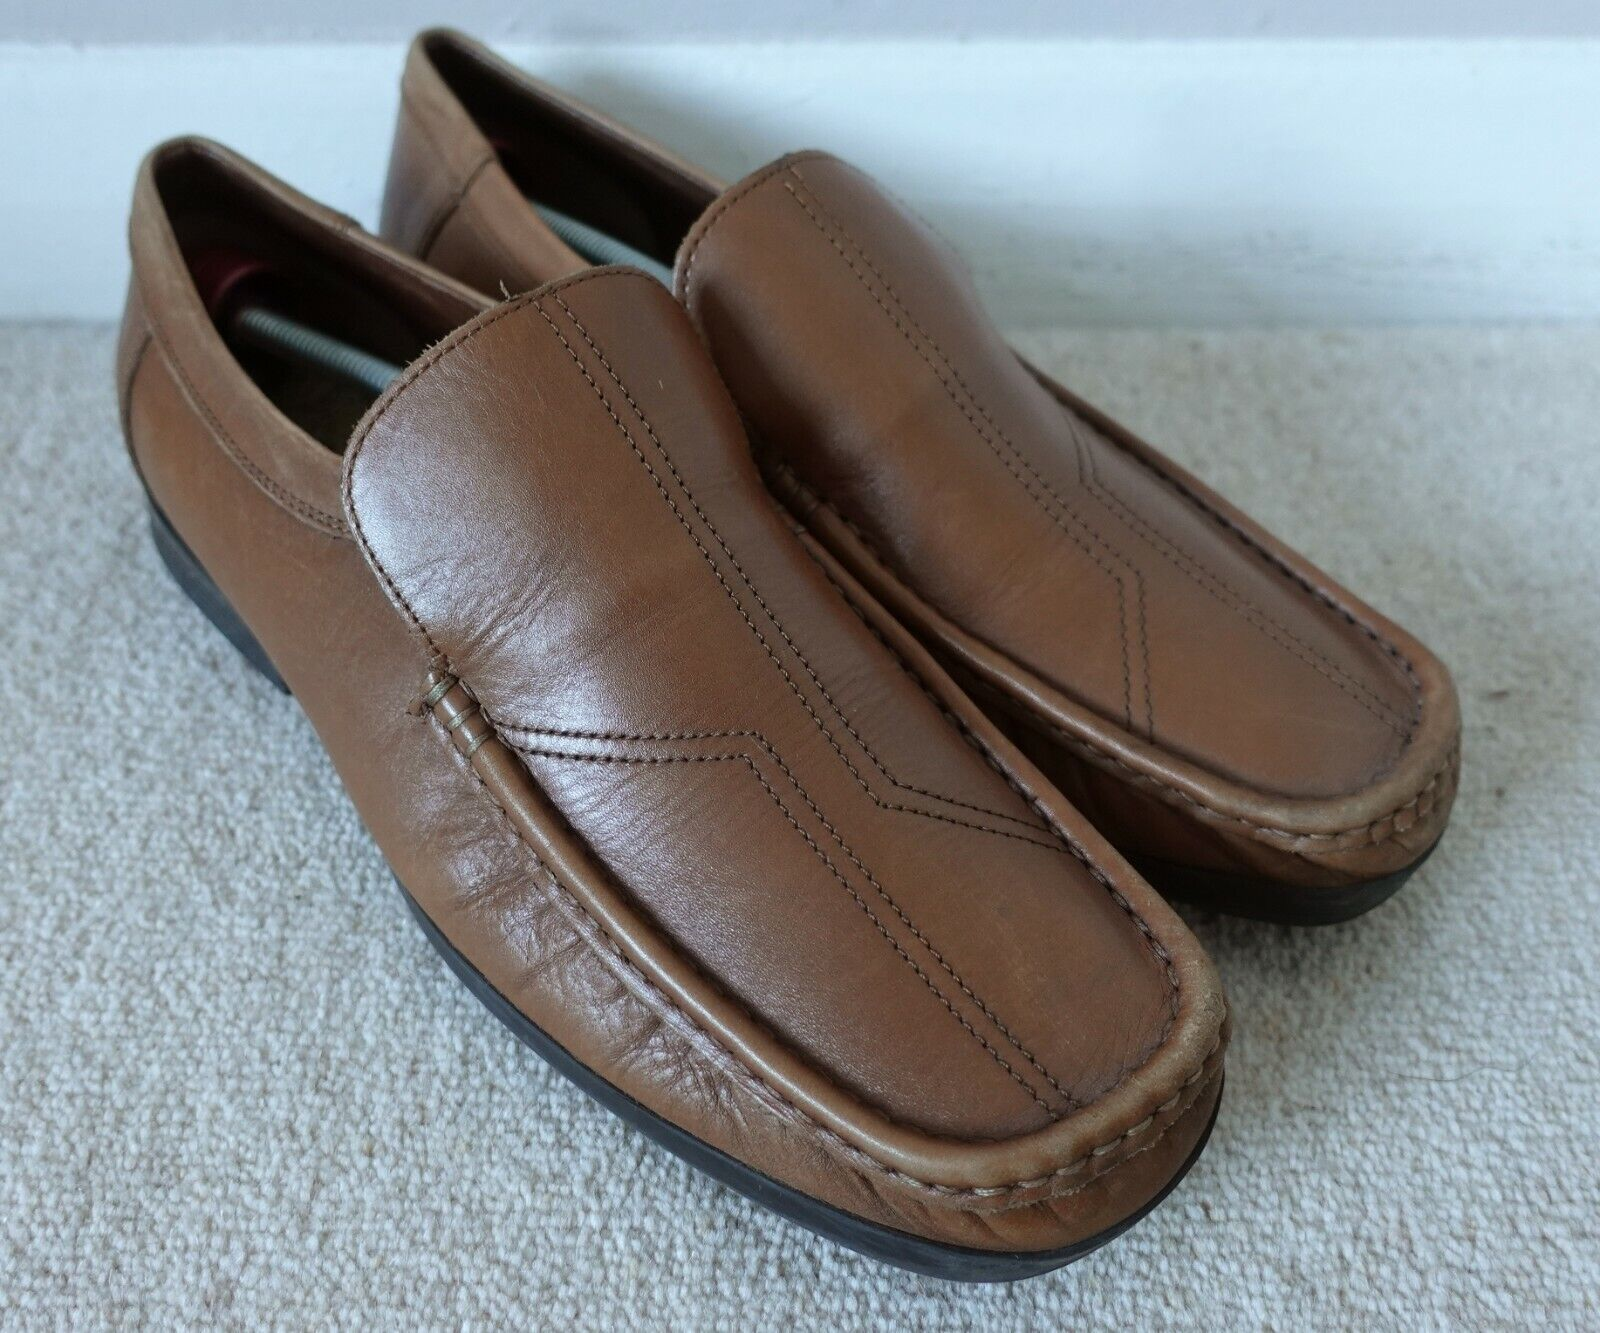 Clarks Slip On Loafers. Brown Leather. Hardly Worn, Excellent Condition.